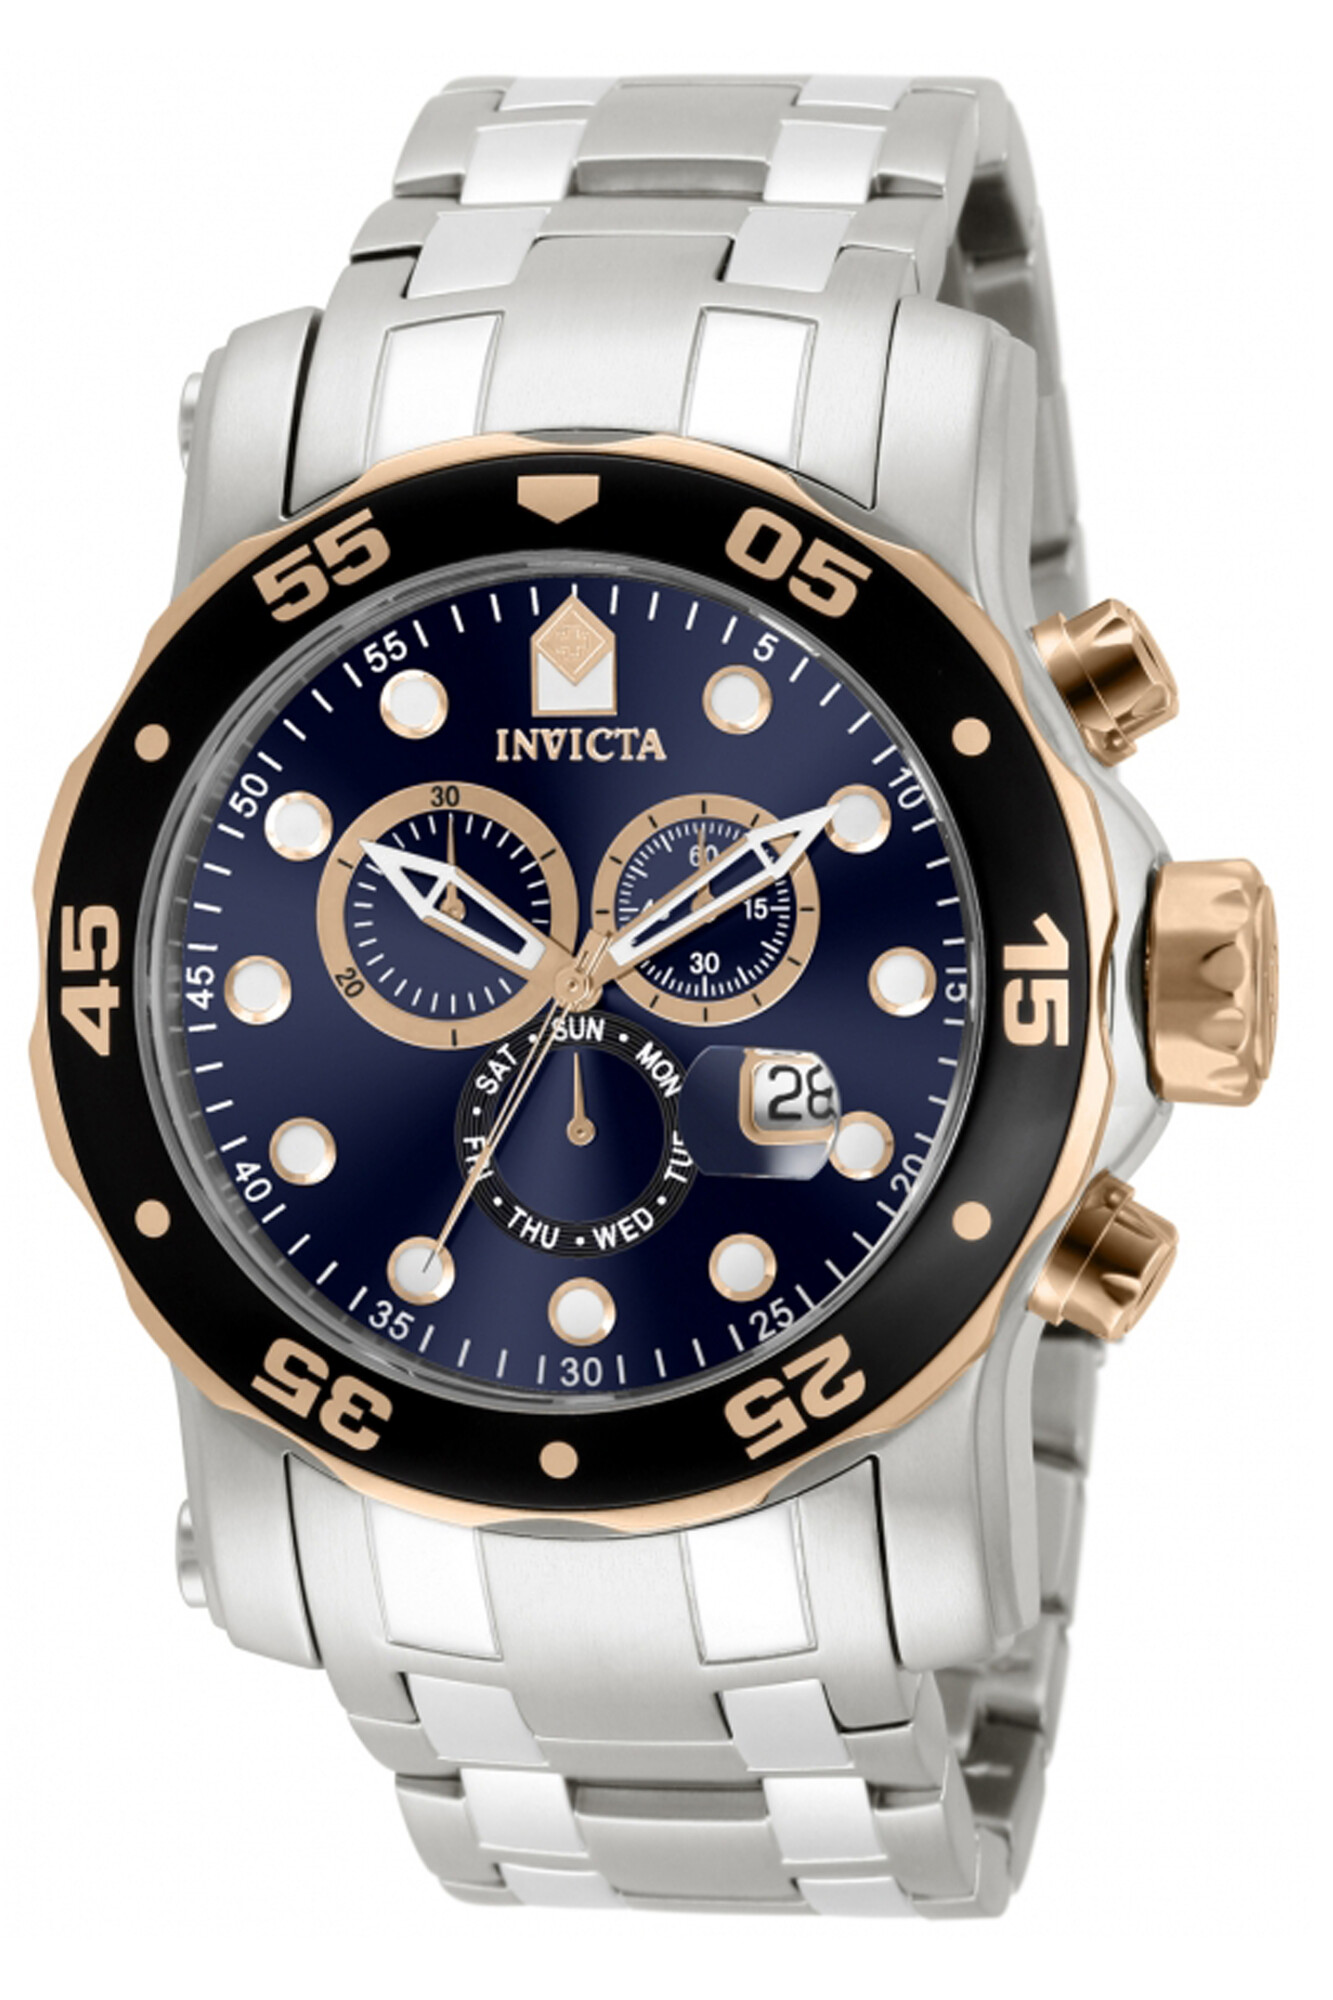 Invicta Men's Pro Diver 80038 Silver Stainless-Steel Plated Swiss Parts Chronograph Dress Watch